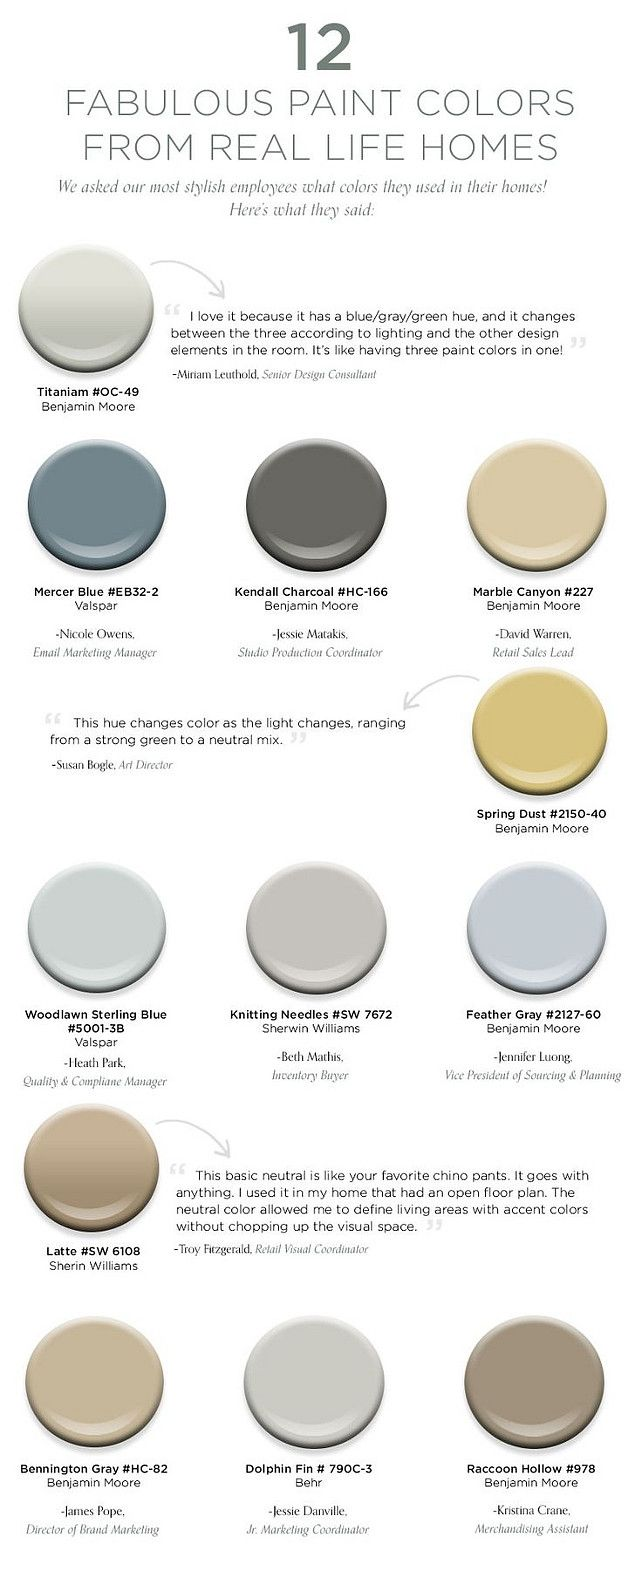 Paint Color Ideas And Palette For Real Homes Colorpalette ...